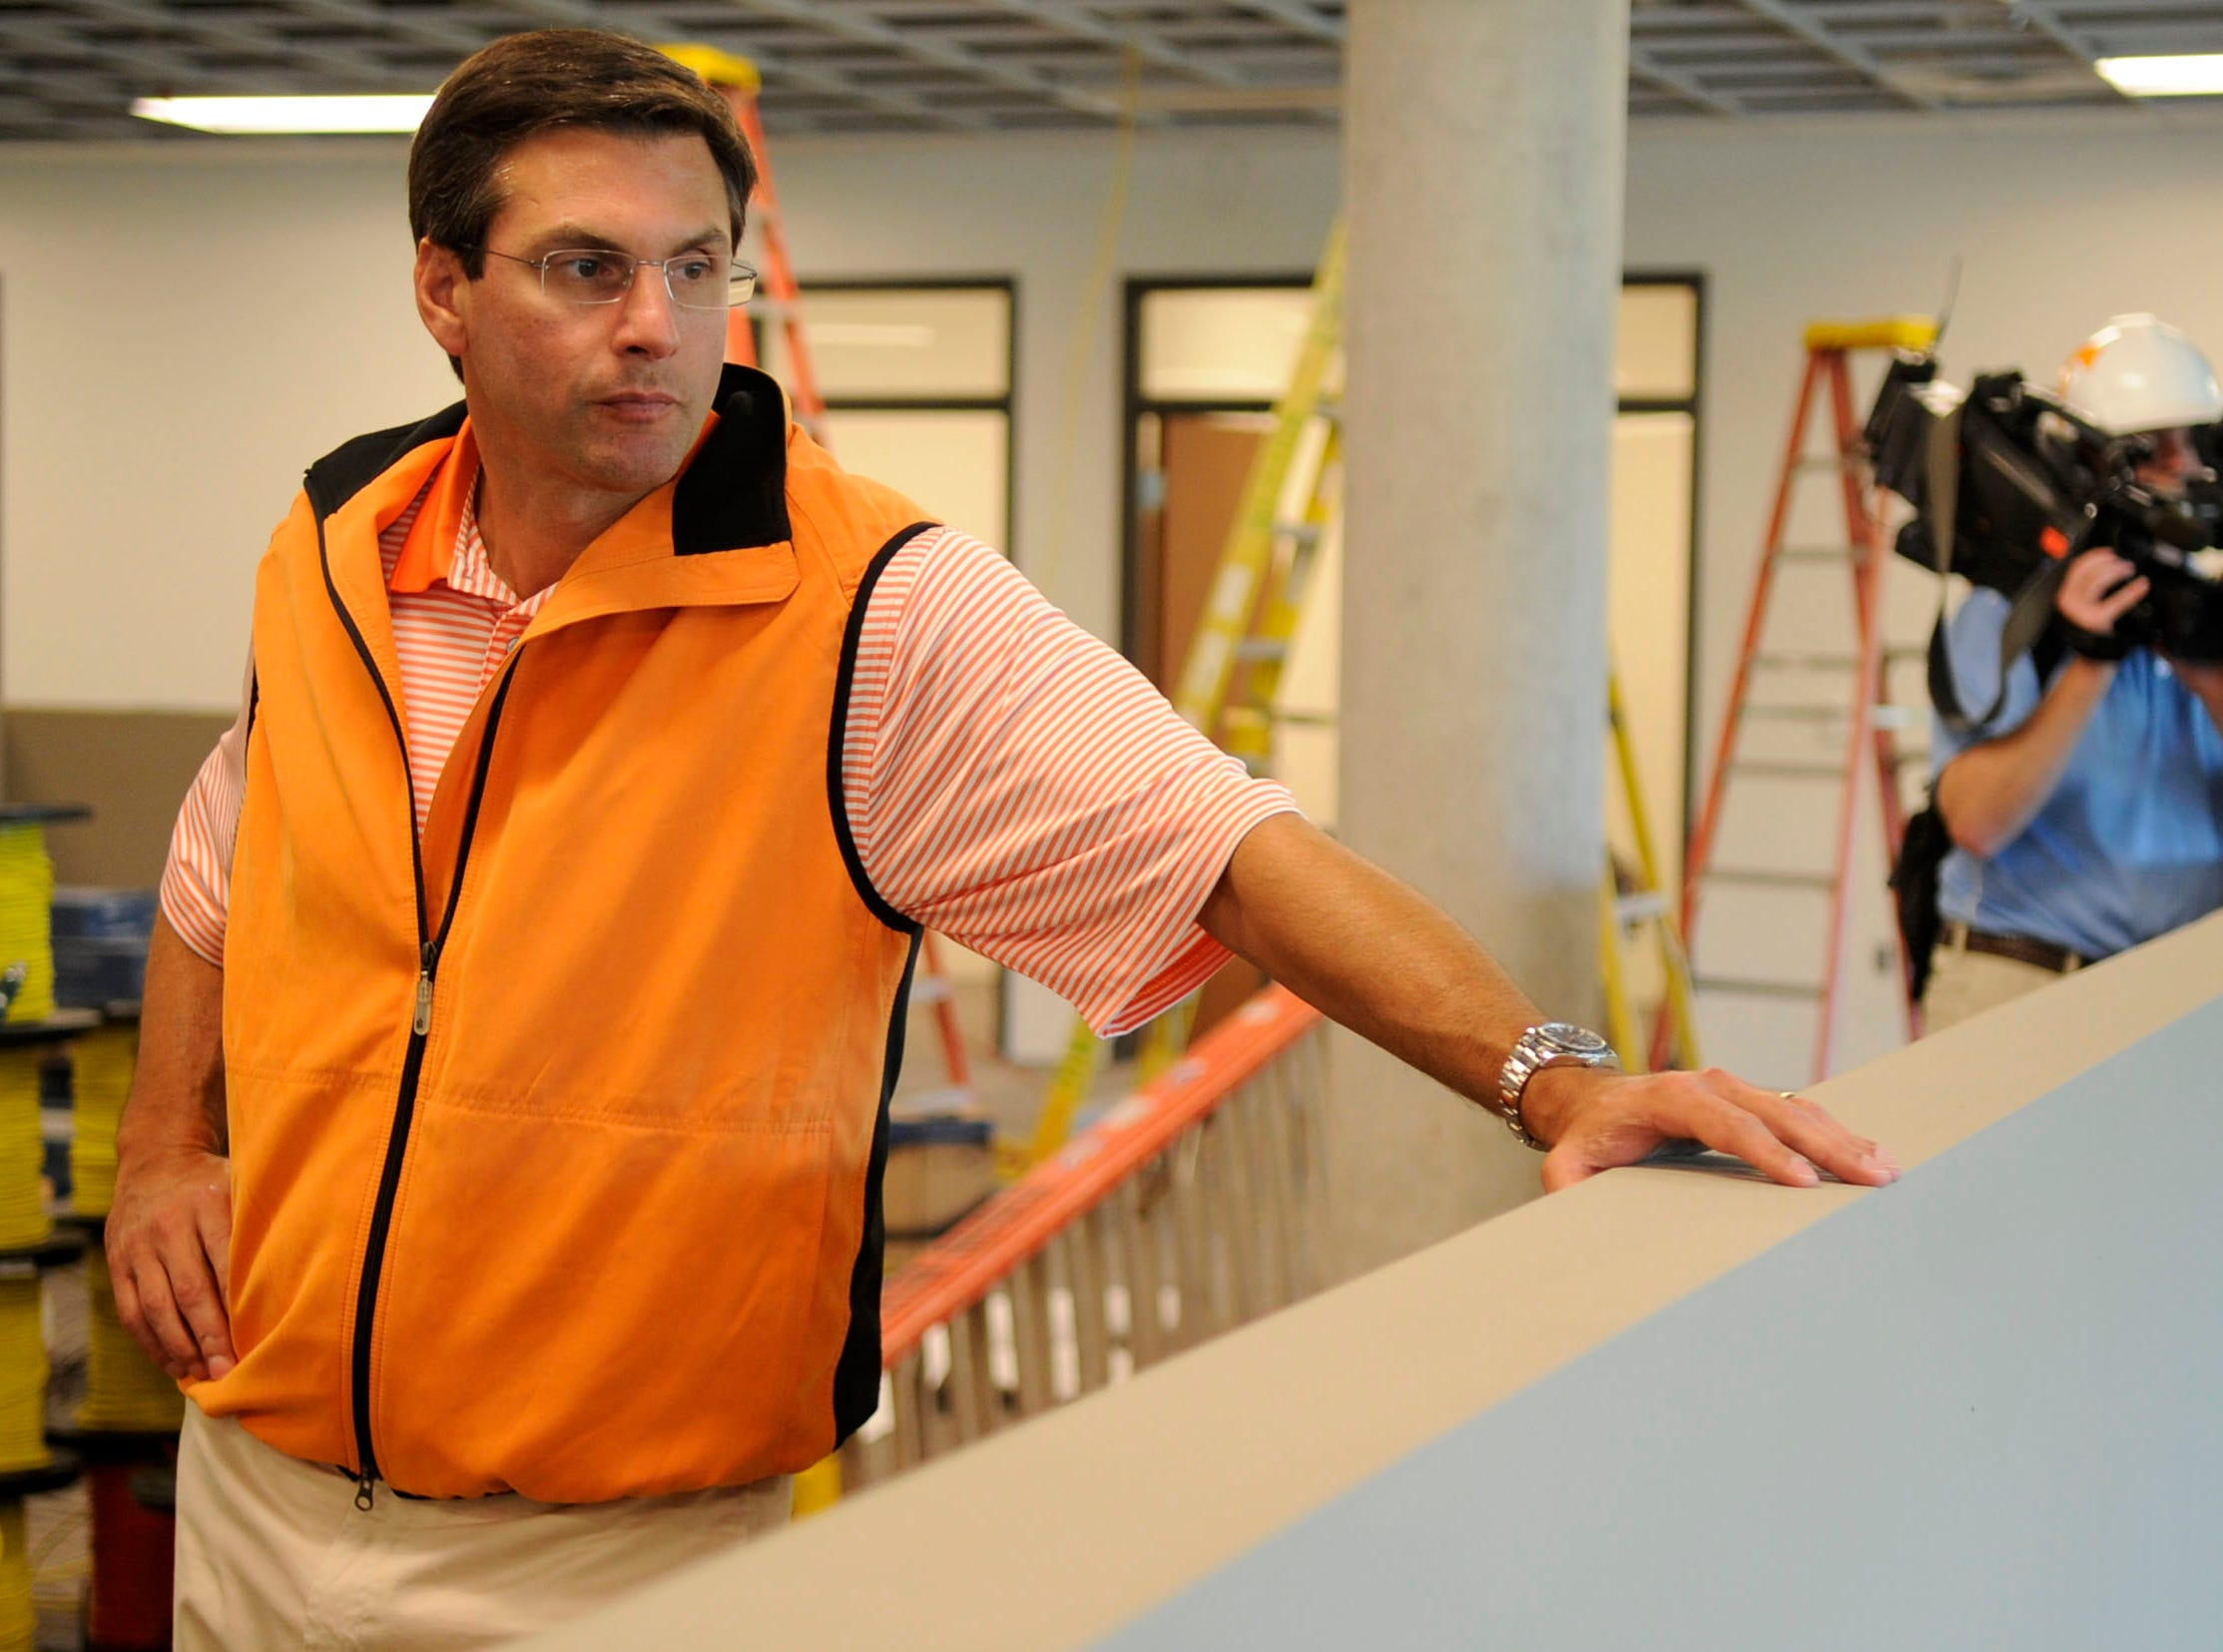 University of Tennessee head football coach Derek Dooley leads members of the media on a tour of the new Brenda Lawson Athletic Center and Neyland-Thompson Sports Center on Friday, July 27, 2012. The 145,000-square-foot practice facility is slated for completion this fall.